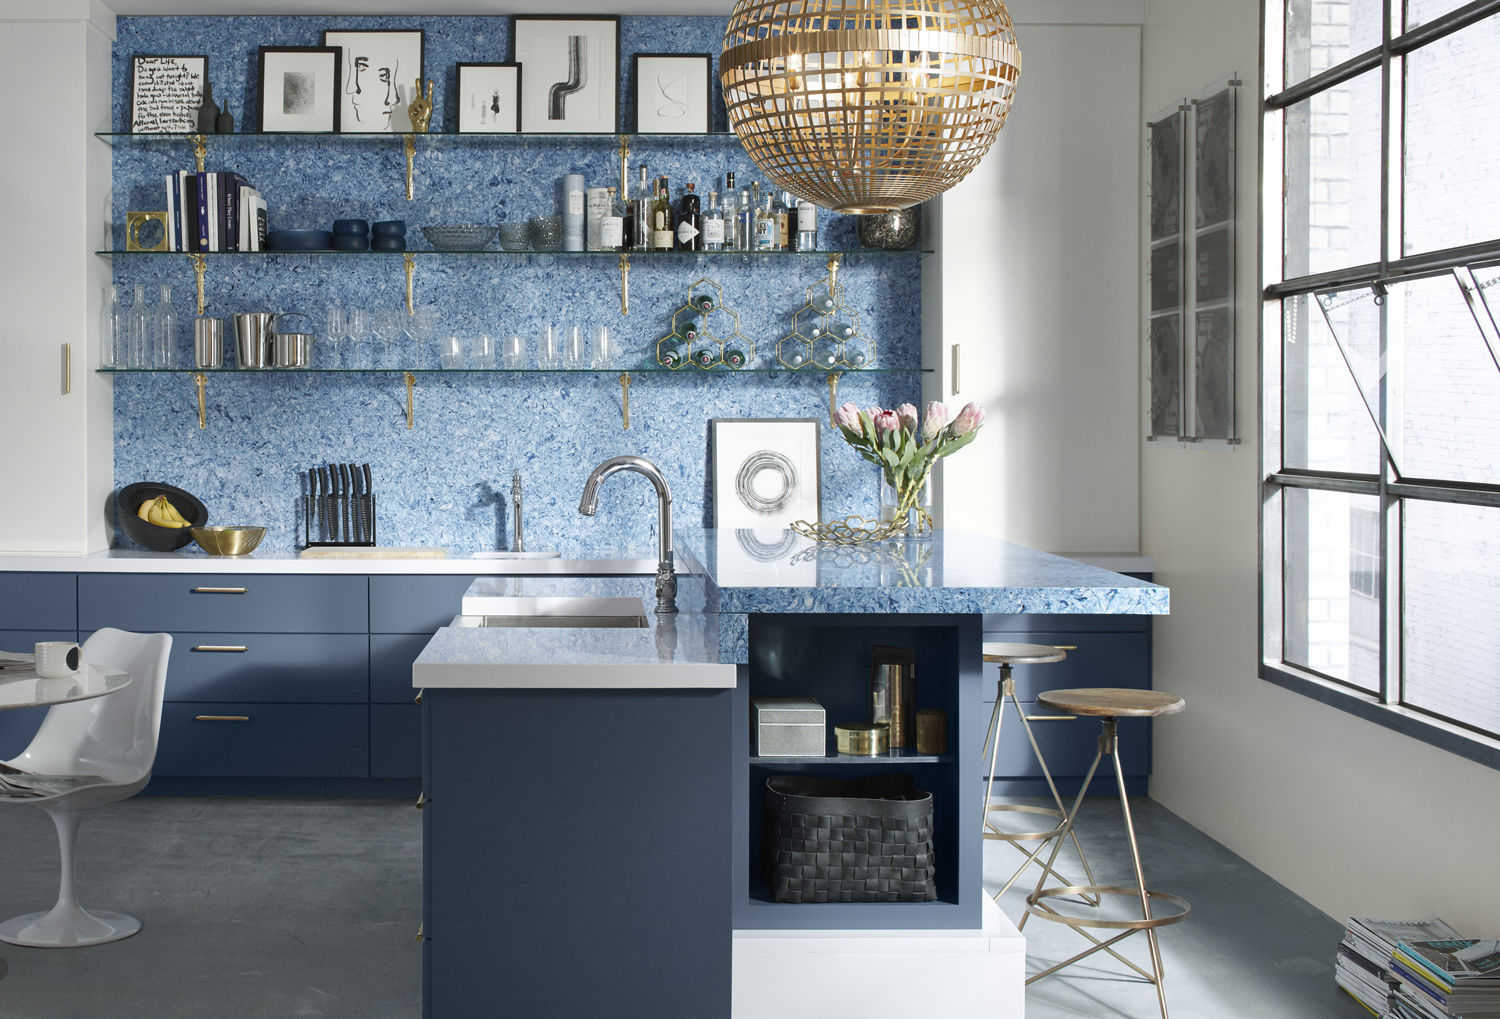 Beckon® touchless kitchen faucet     Albedo wall and breakfast counter     Using the countertop material she designed, Kerrie Kelly created a vibrant backdrop for elegant open shelving. A curated collection of glass floats above navy cabinets.